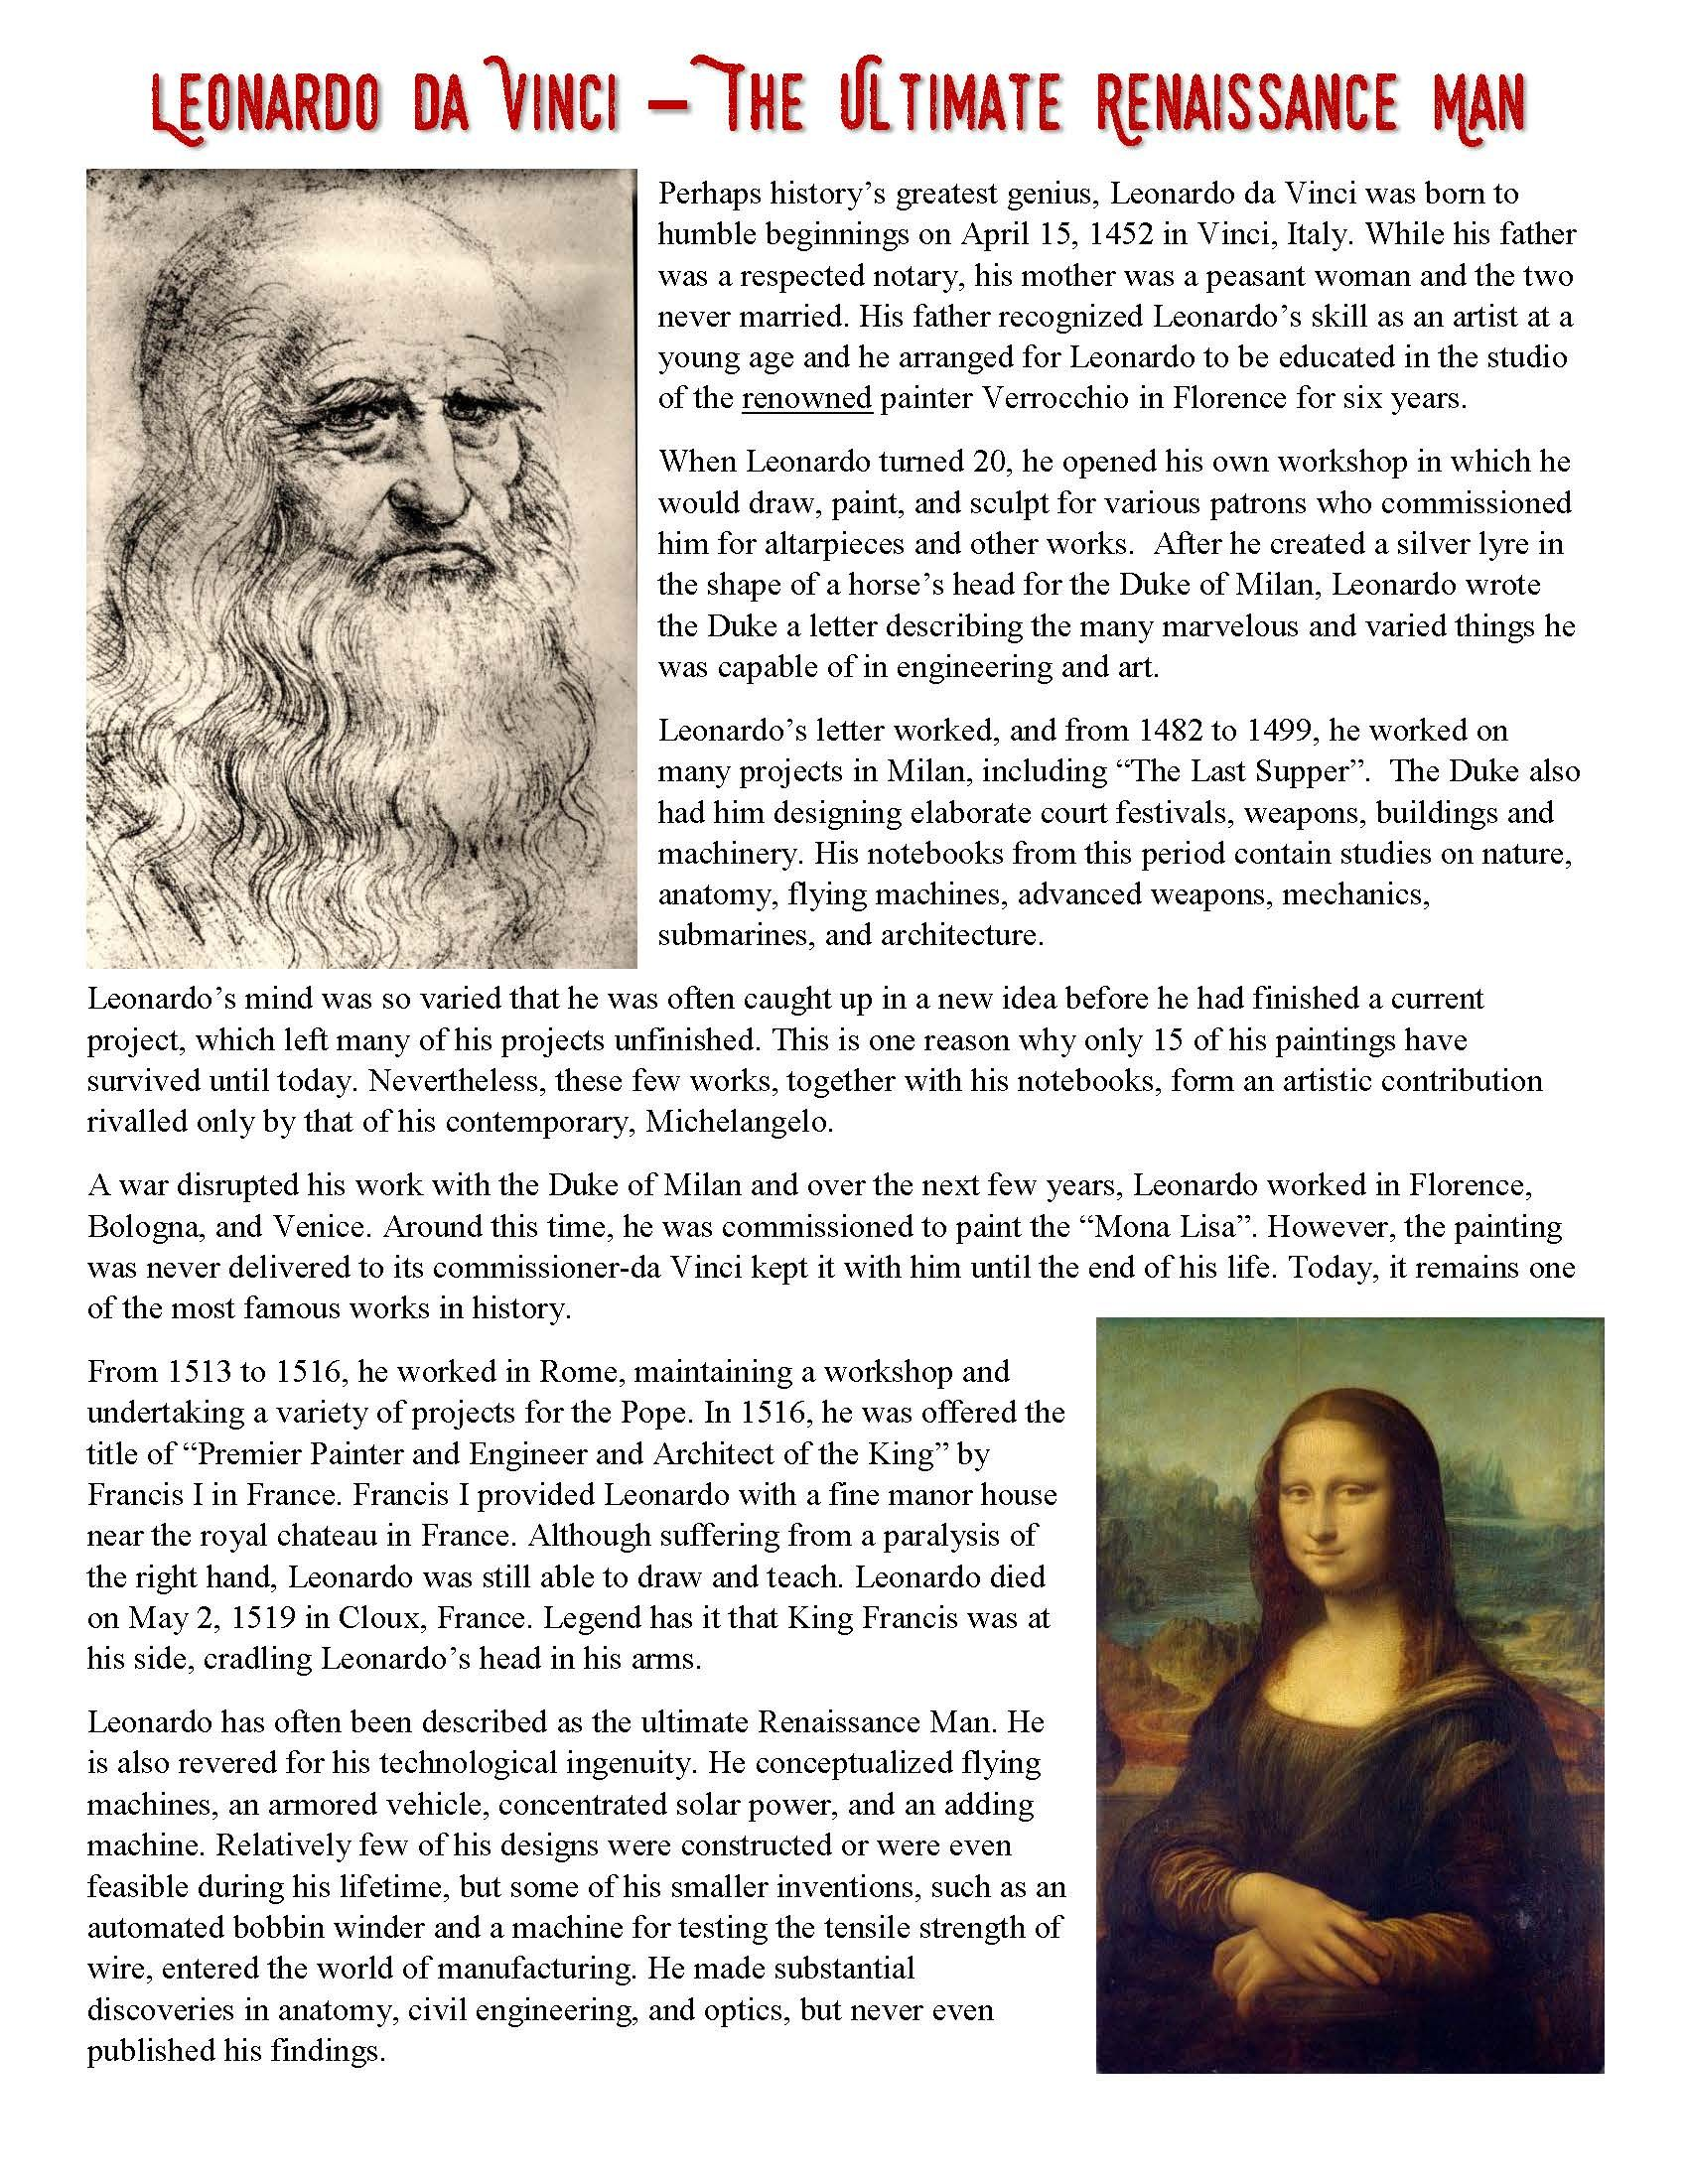 leonardo da vinci during the renaissance era Leonardo da vinci,  his early years were spent living on his father's family estate in vinci during this period  renaissance mom: leonardo da vinci's mother.